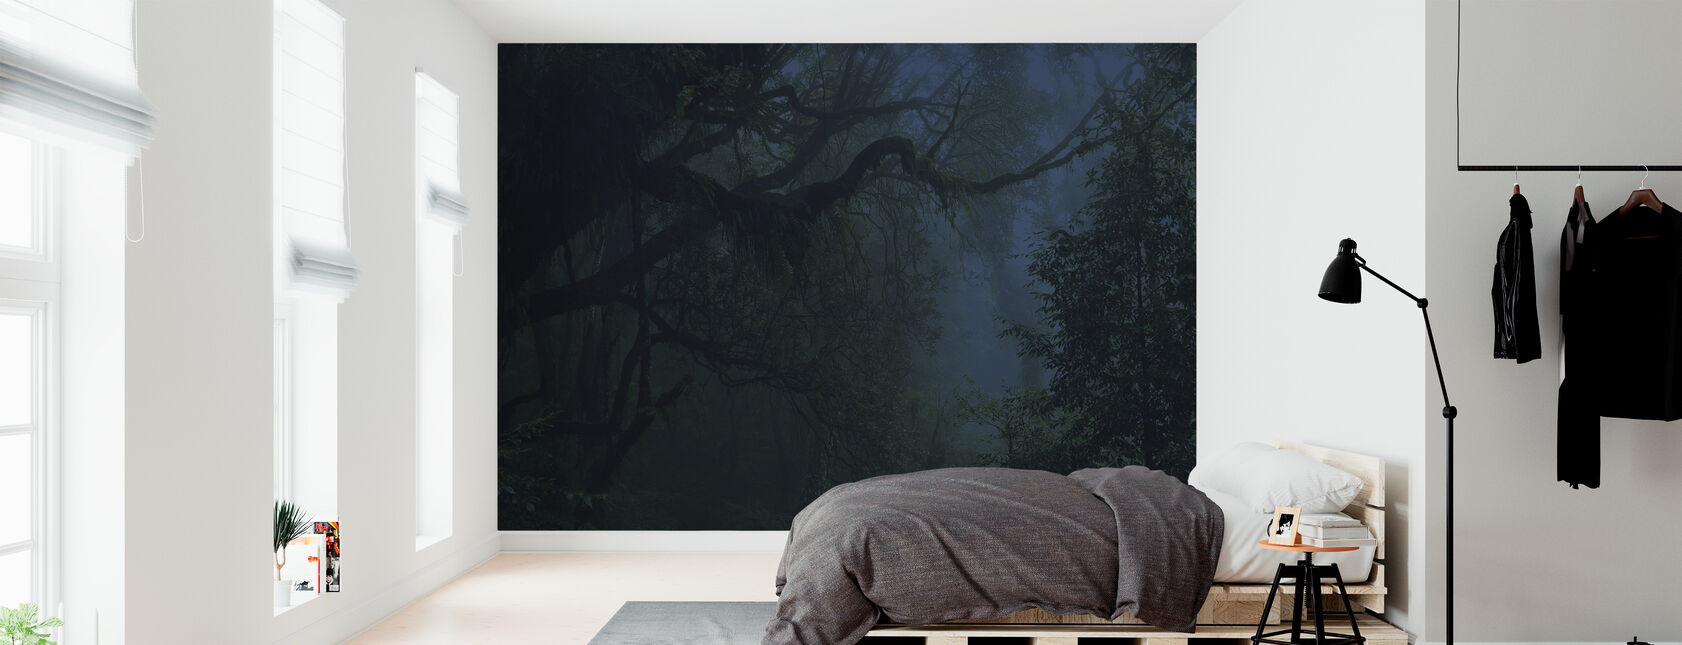 Dusking - Wallpaper - Bedroom